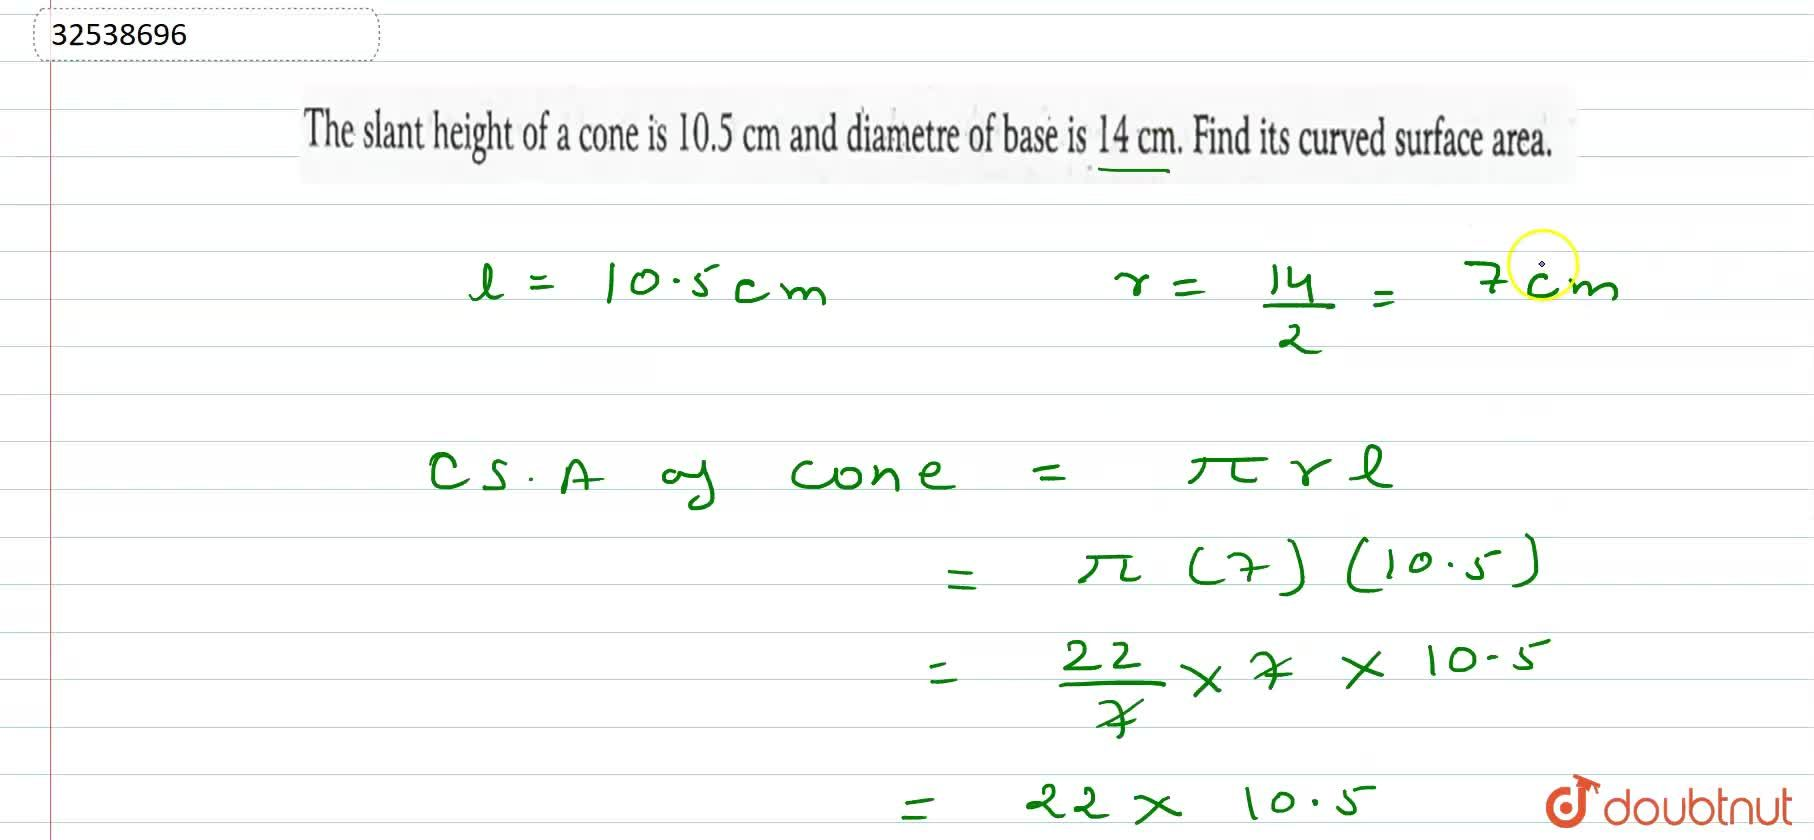 The slant height of a cone is 10.5 cm and diametre of base is 14 cm. Find its curved surface area.